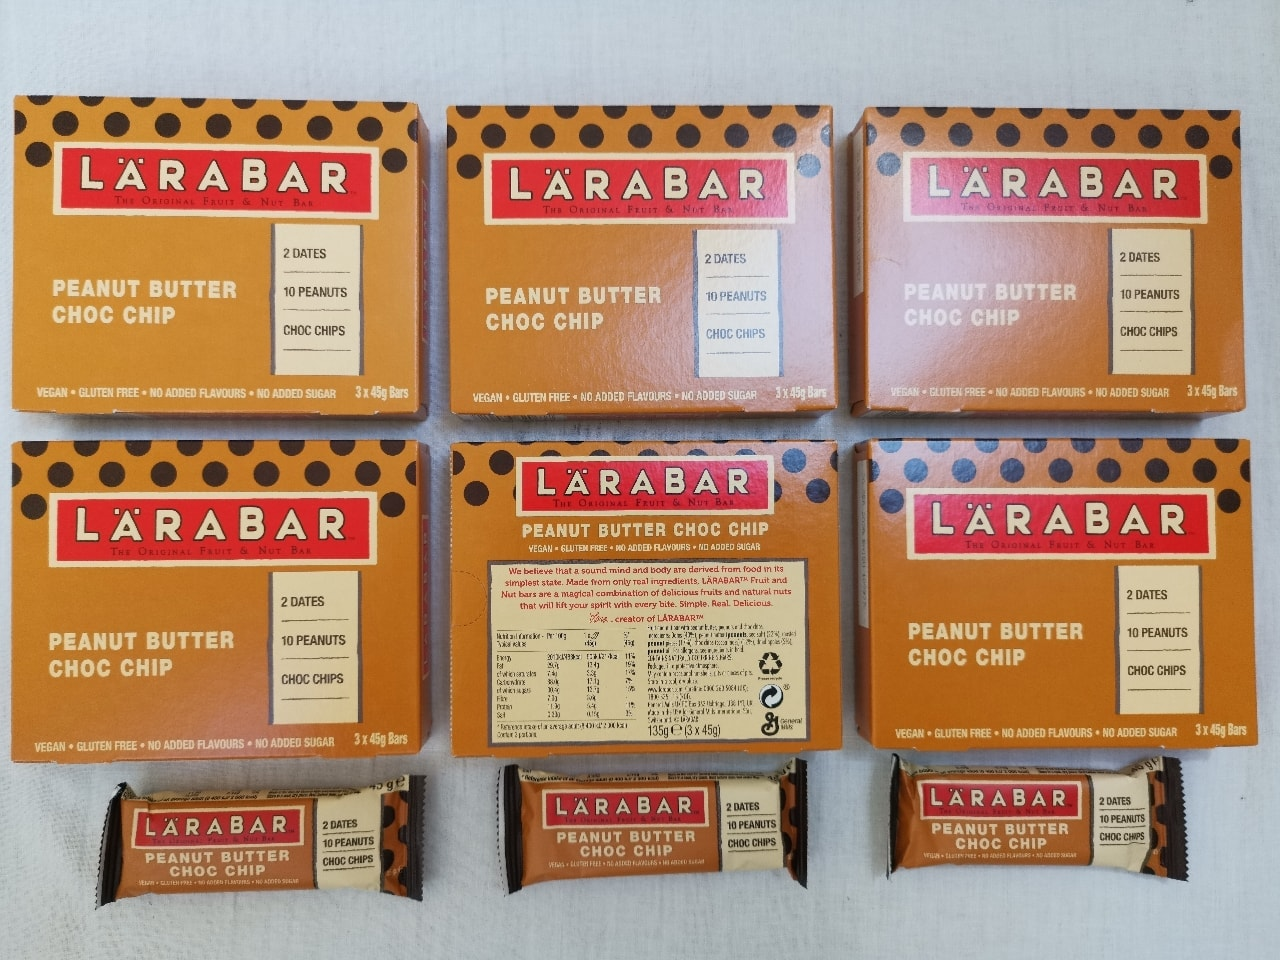 Peanut Butter Choc Chip Energy Bars by LaraBar 🥜 🍫